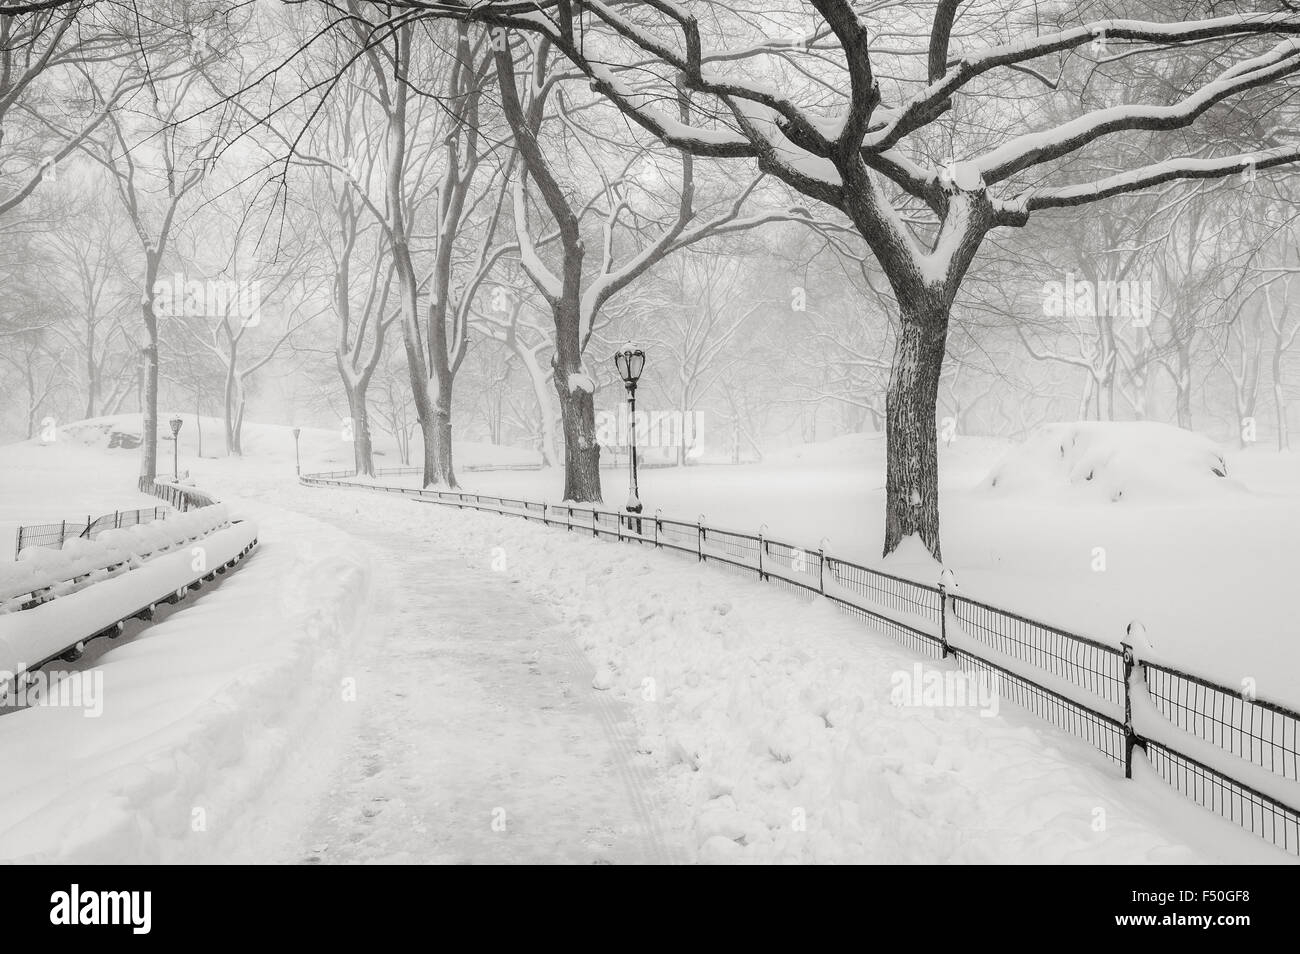 Snow in Central Park - Peaceful winter atmosphere in the heart of Manhattan, New York City - Stock Image